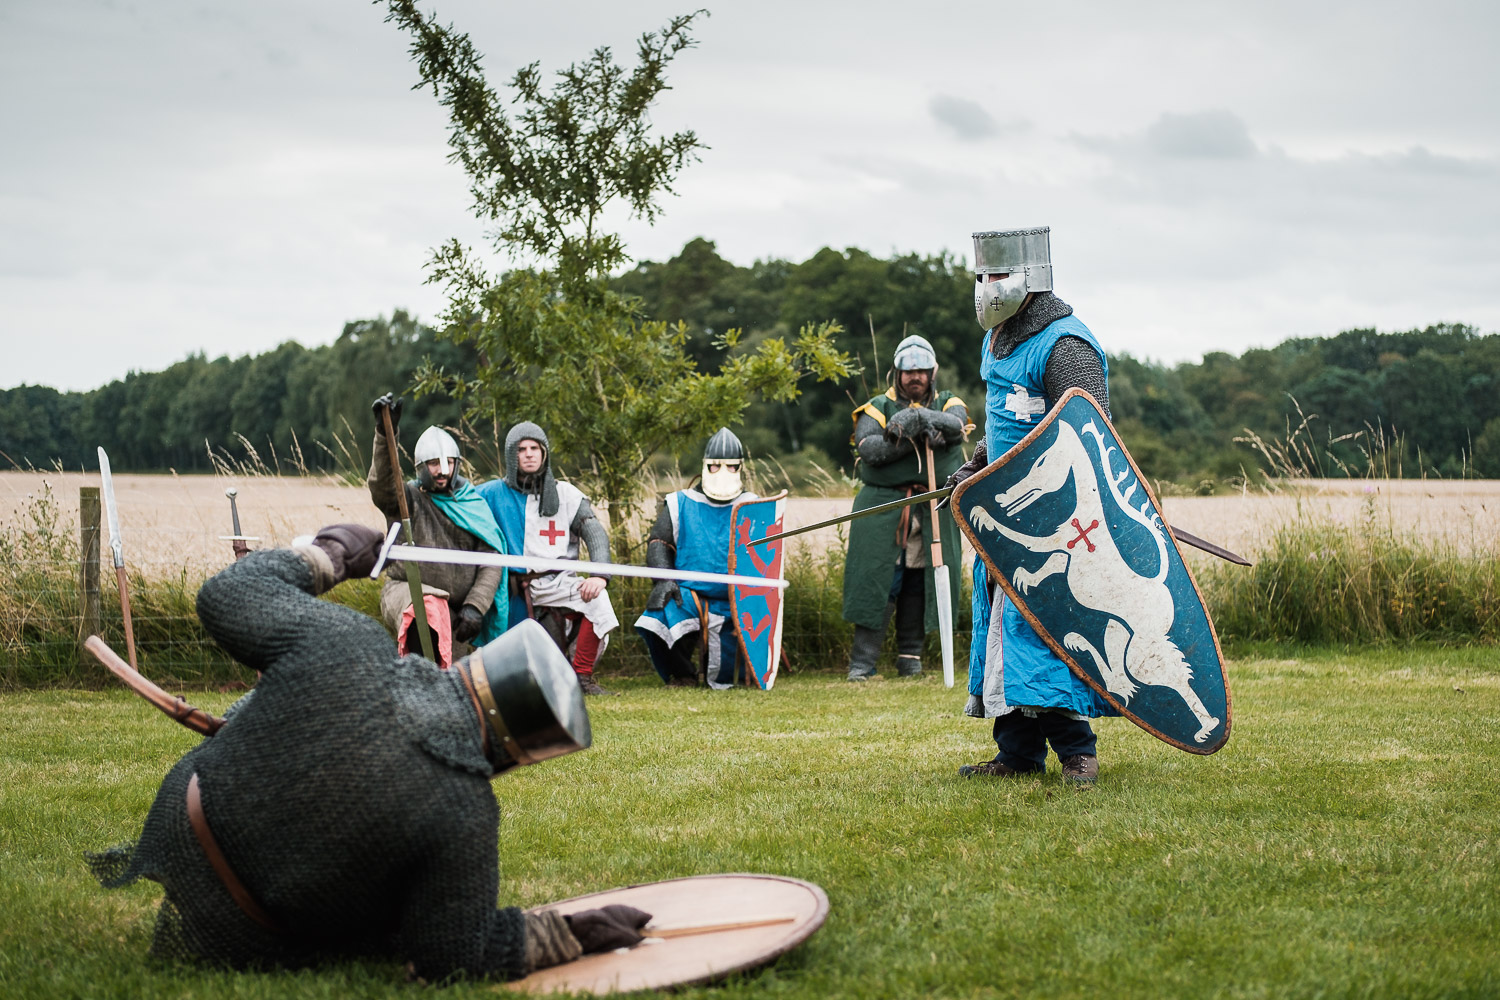 a knight is floored by the groom at the wedding knights tournament